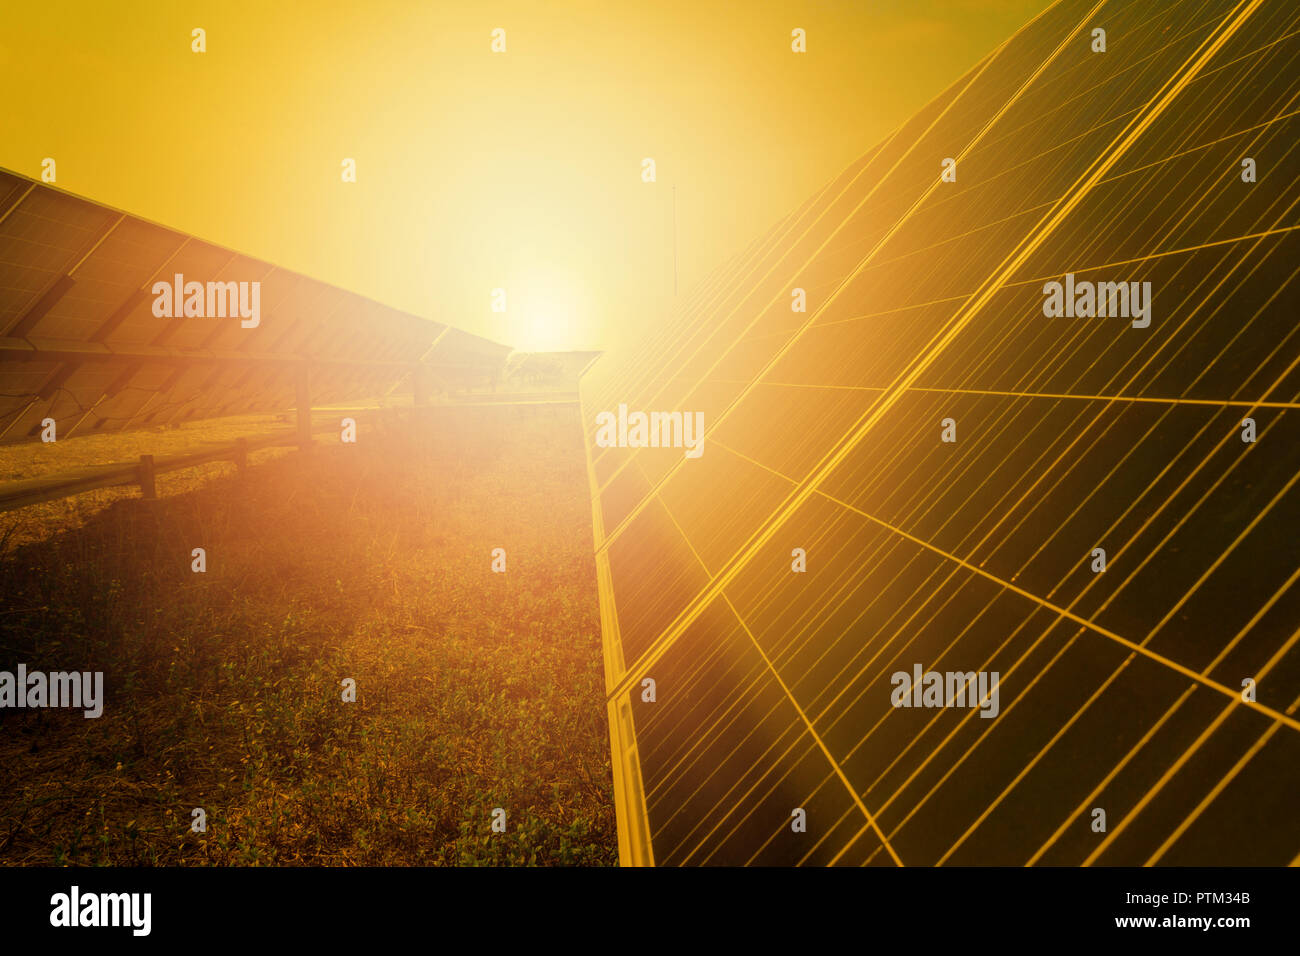 Solar panel tracking systems, Energy power in thailand. - Stock Image